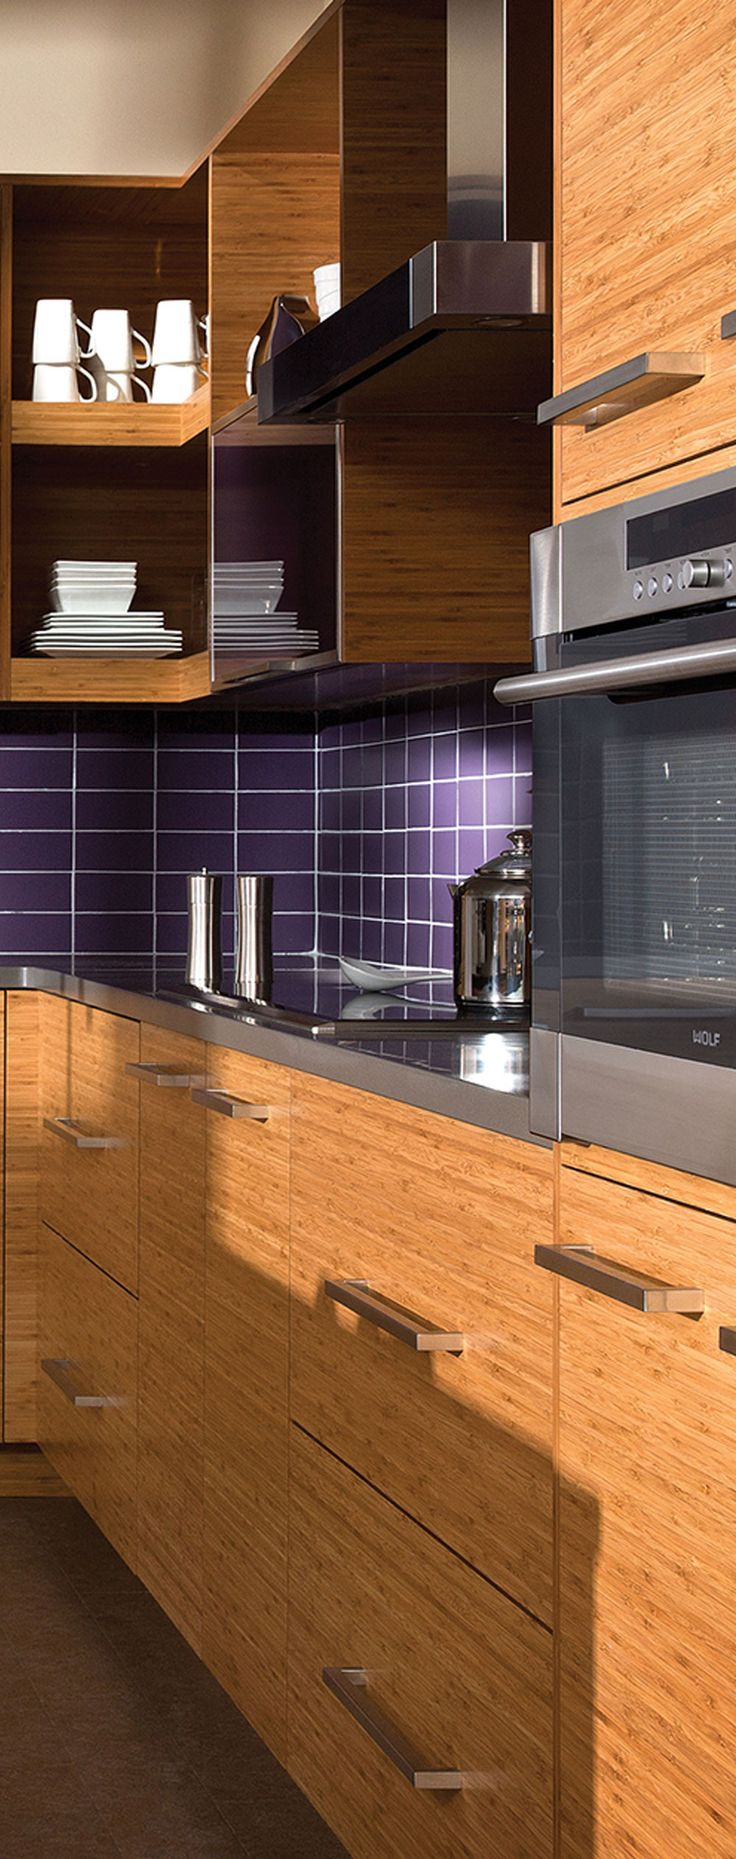 Glass cabinets set in a largely bamboo dominated kitchen - Find This Pin And More On Bamboo Kitchen By Premiumbamboo